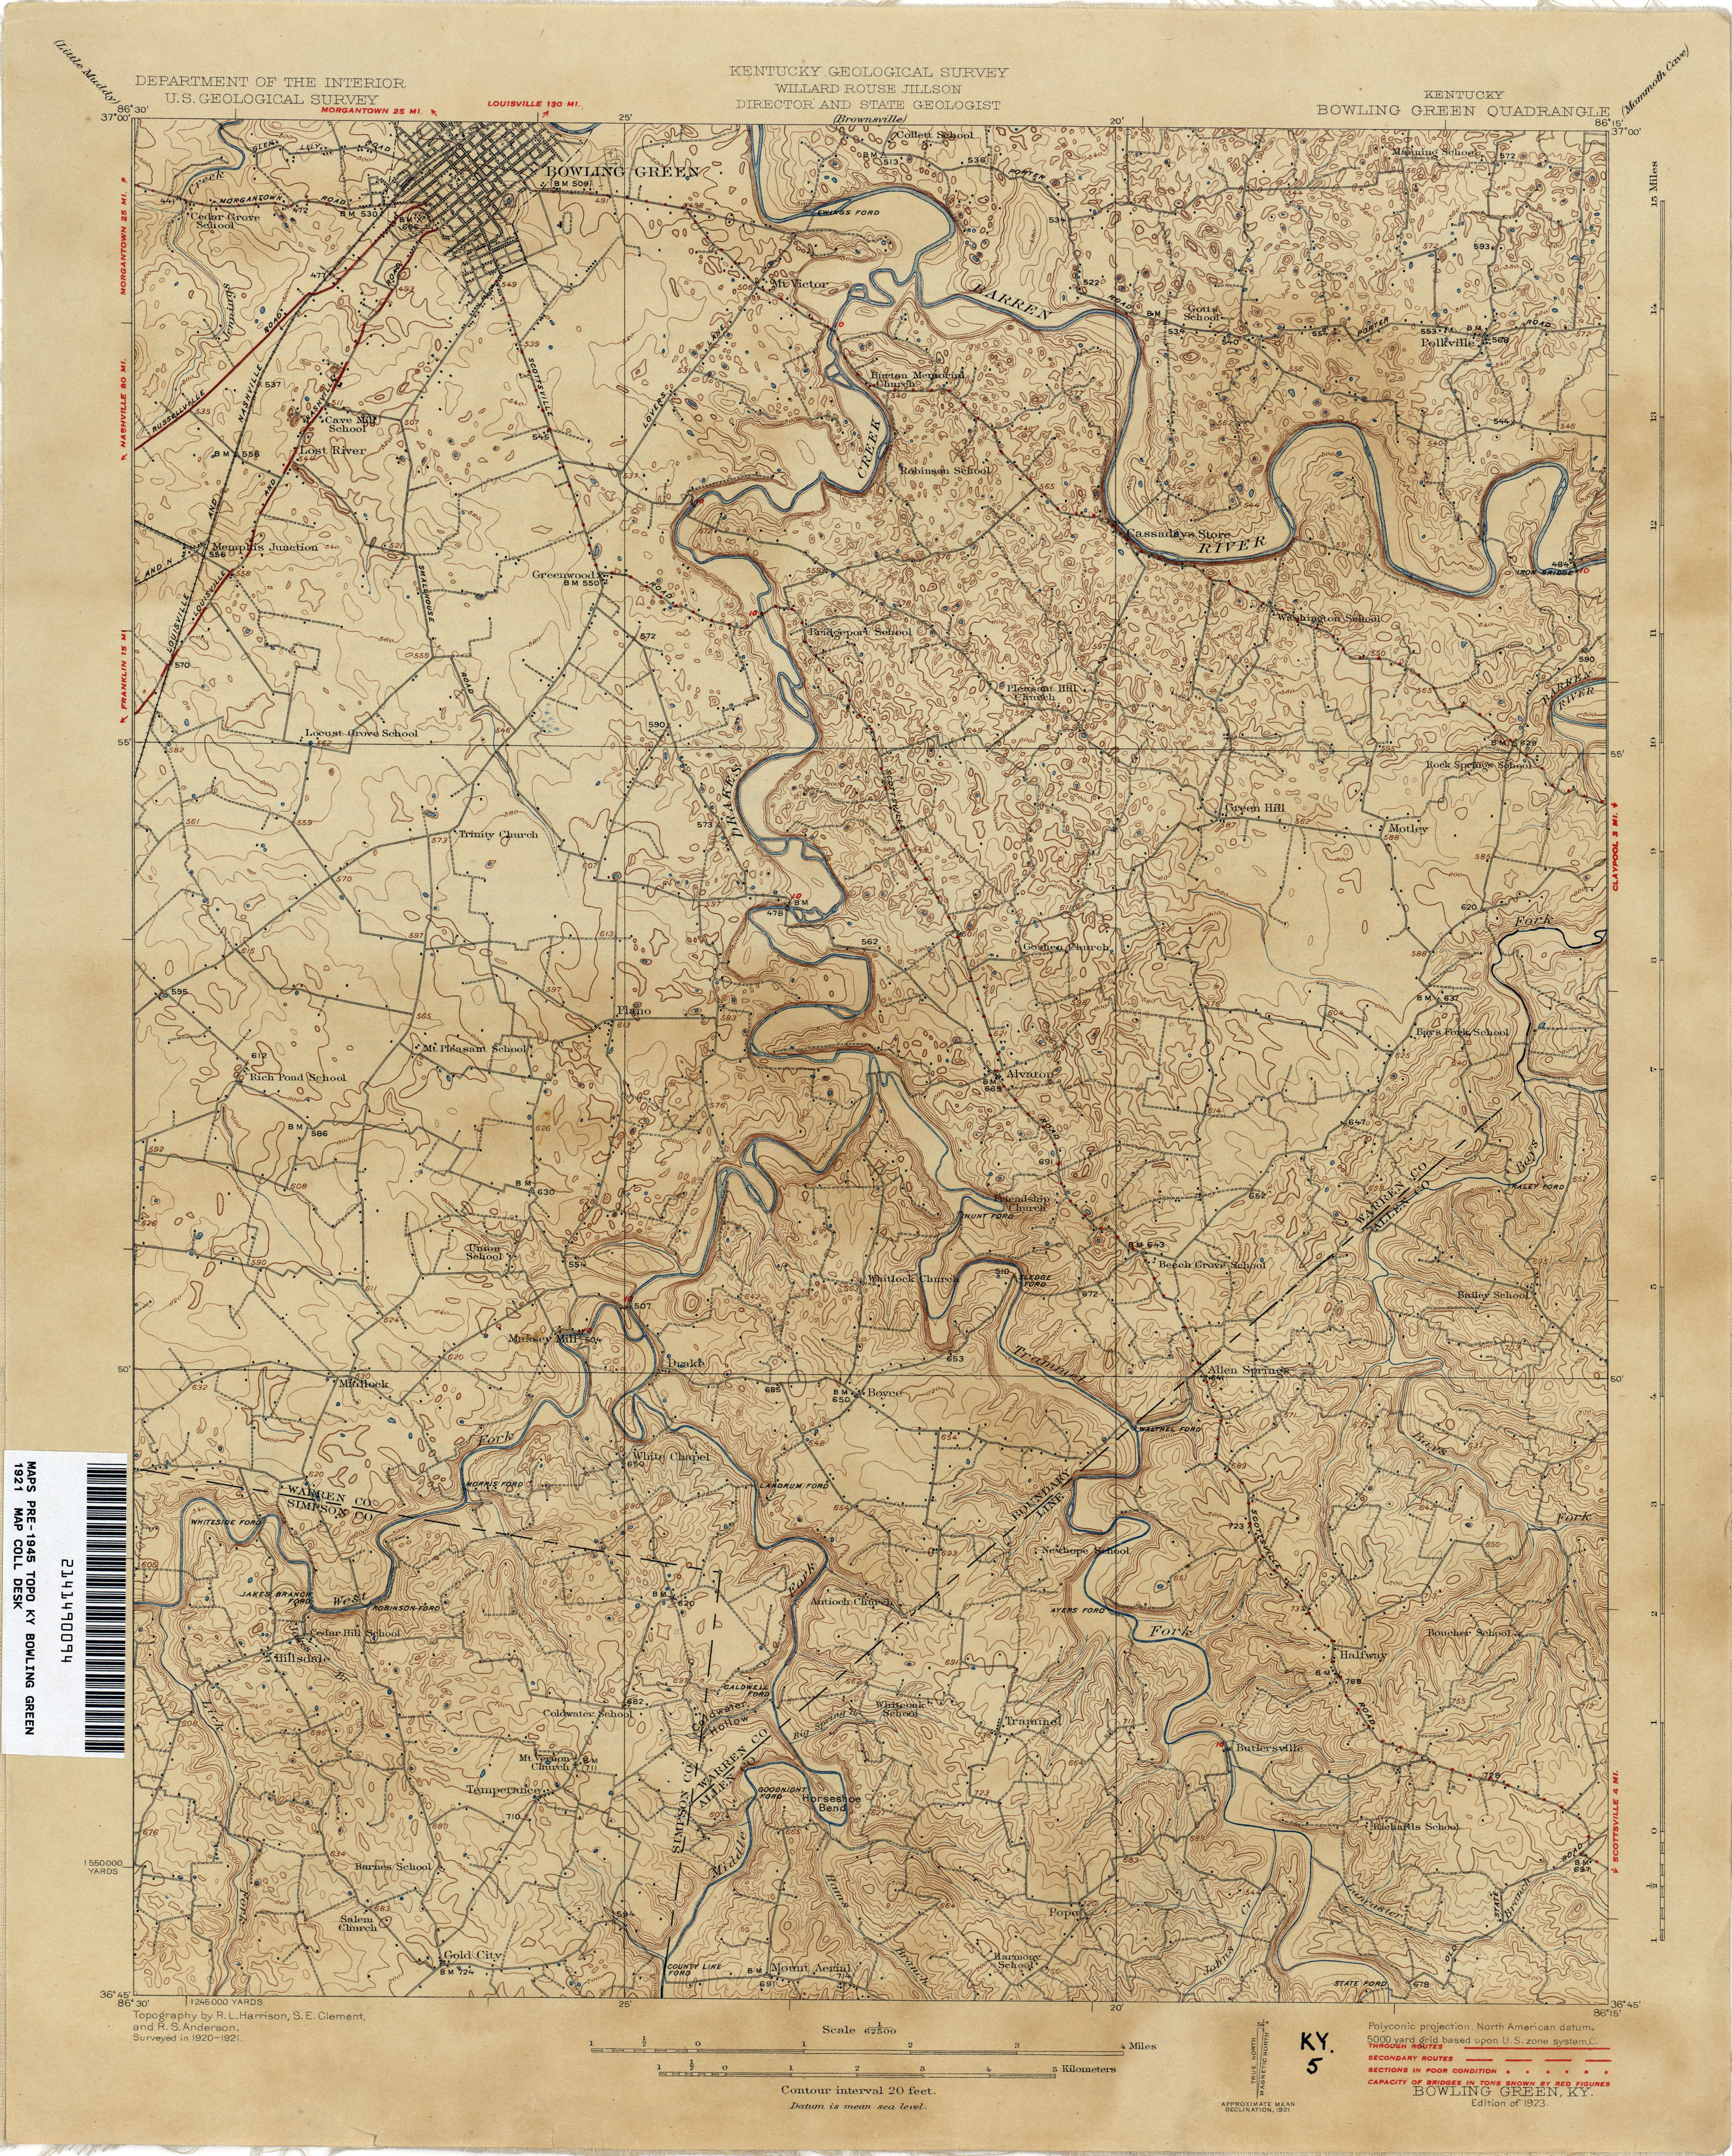 Kentucky Historical Topographic Maps - Perry-Castañeda Map ...